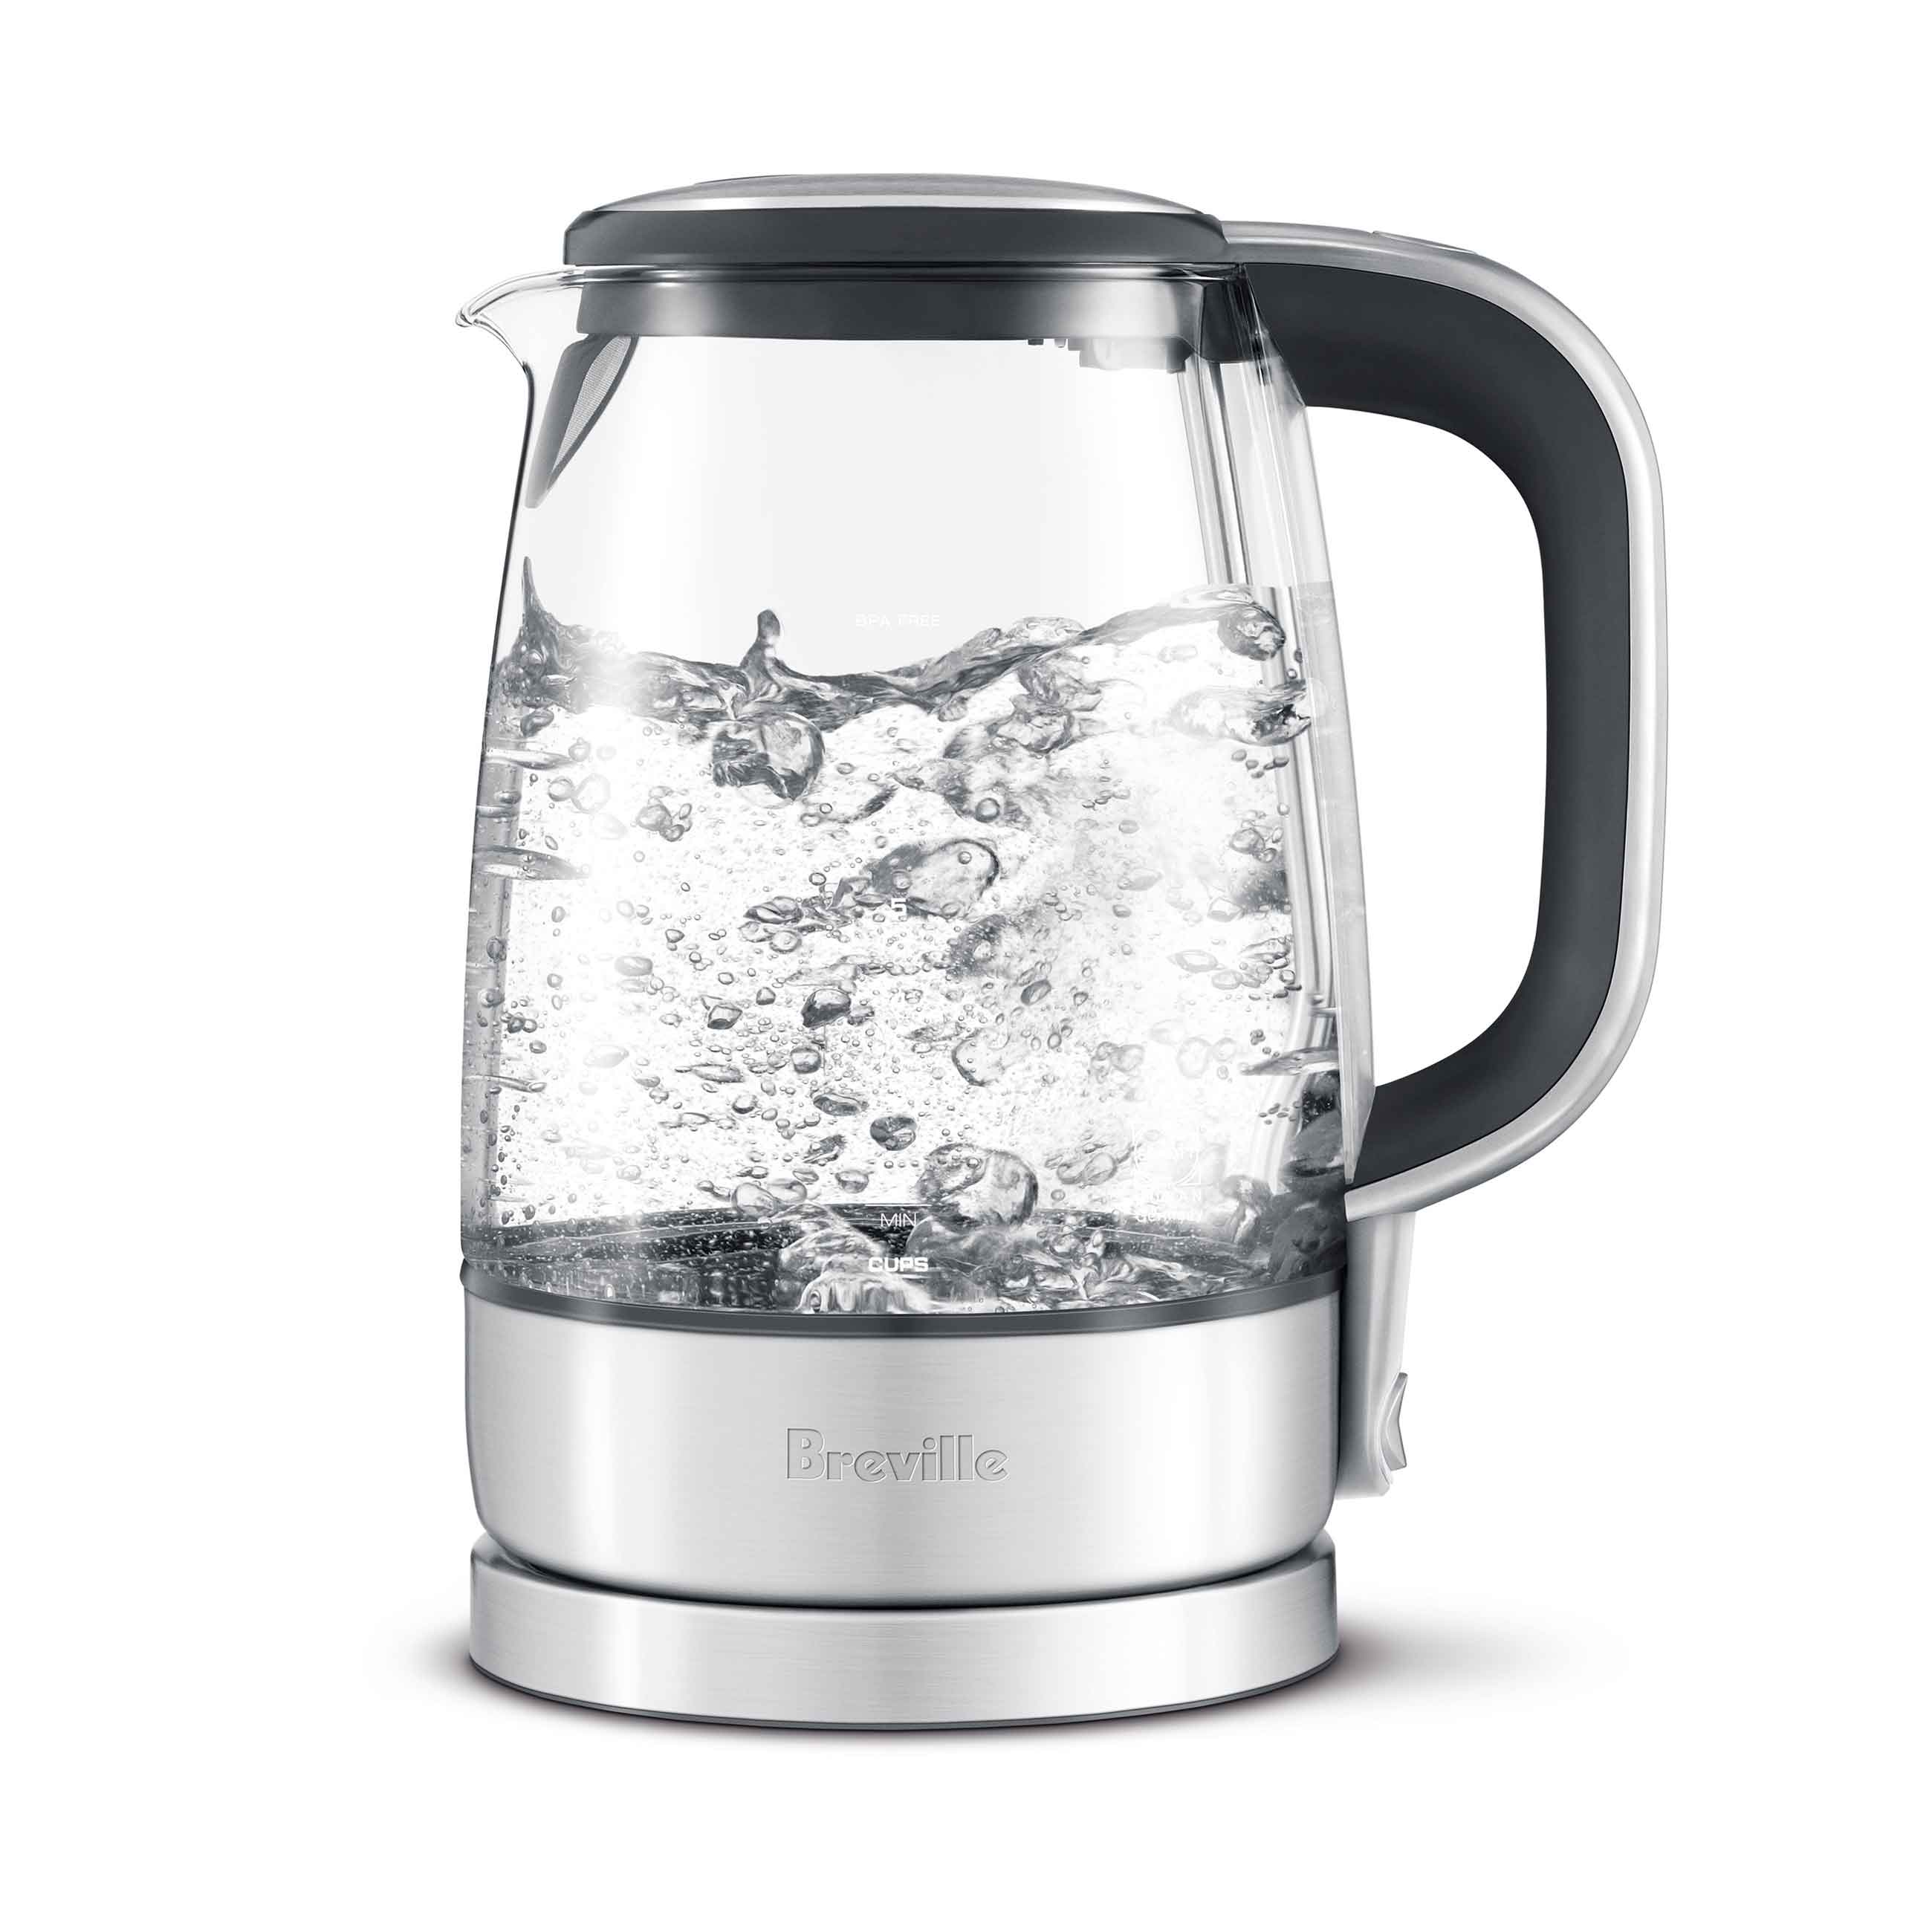 the Crystal Clear™ Tea Machine In Brushed Stainless Steel base with Glass Kettle